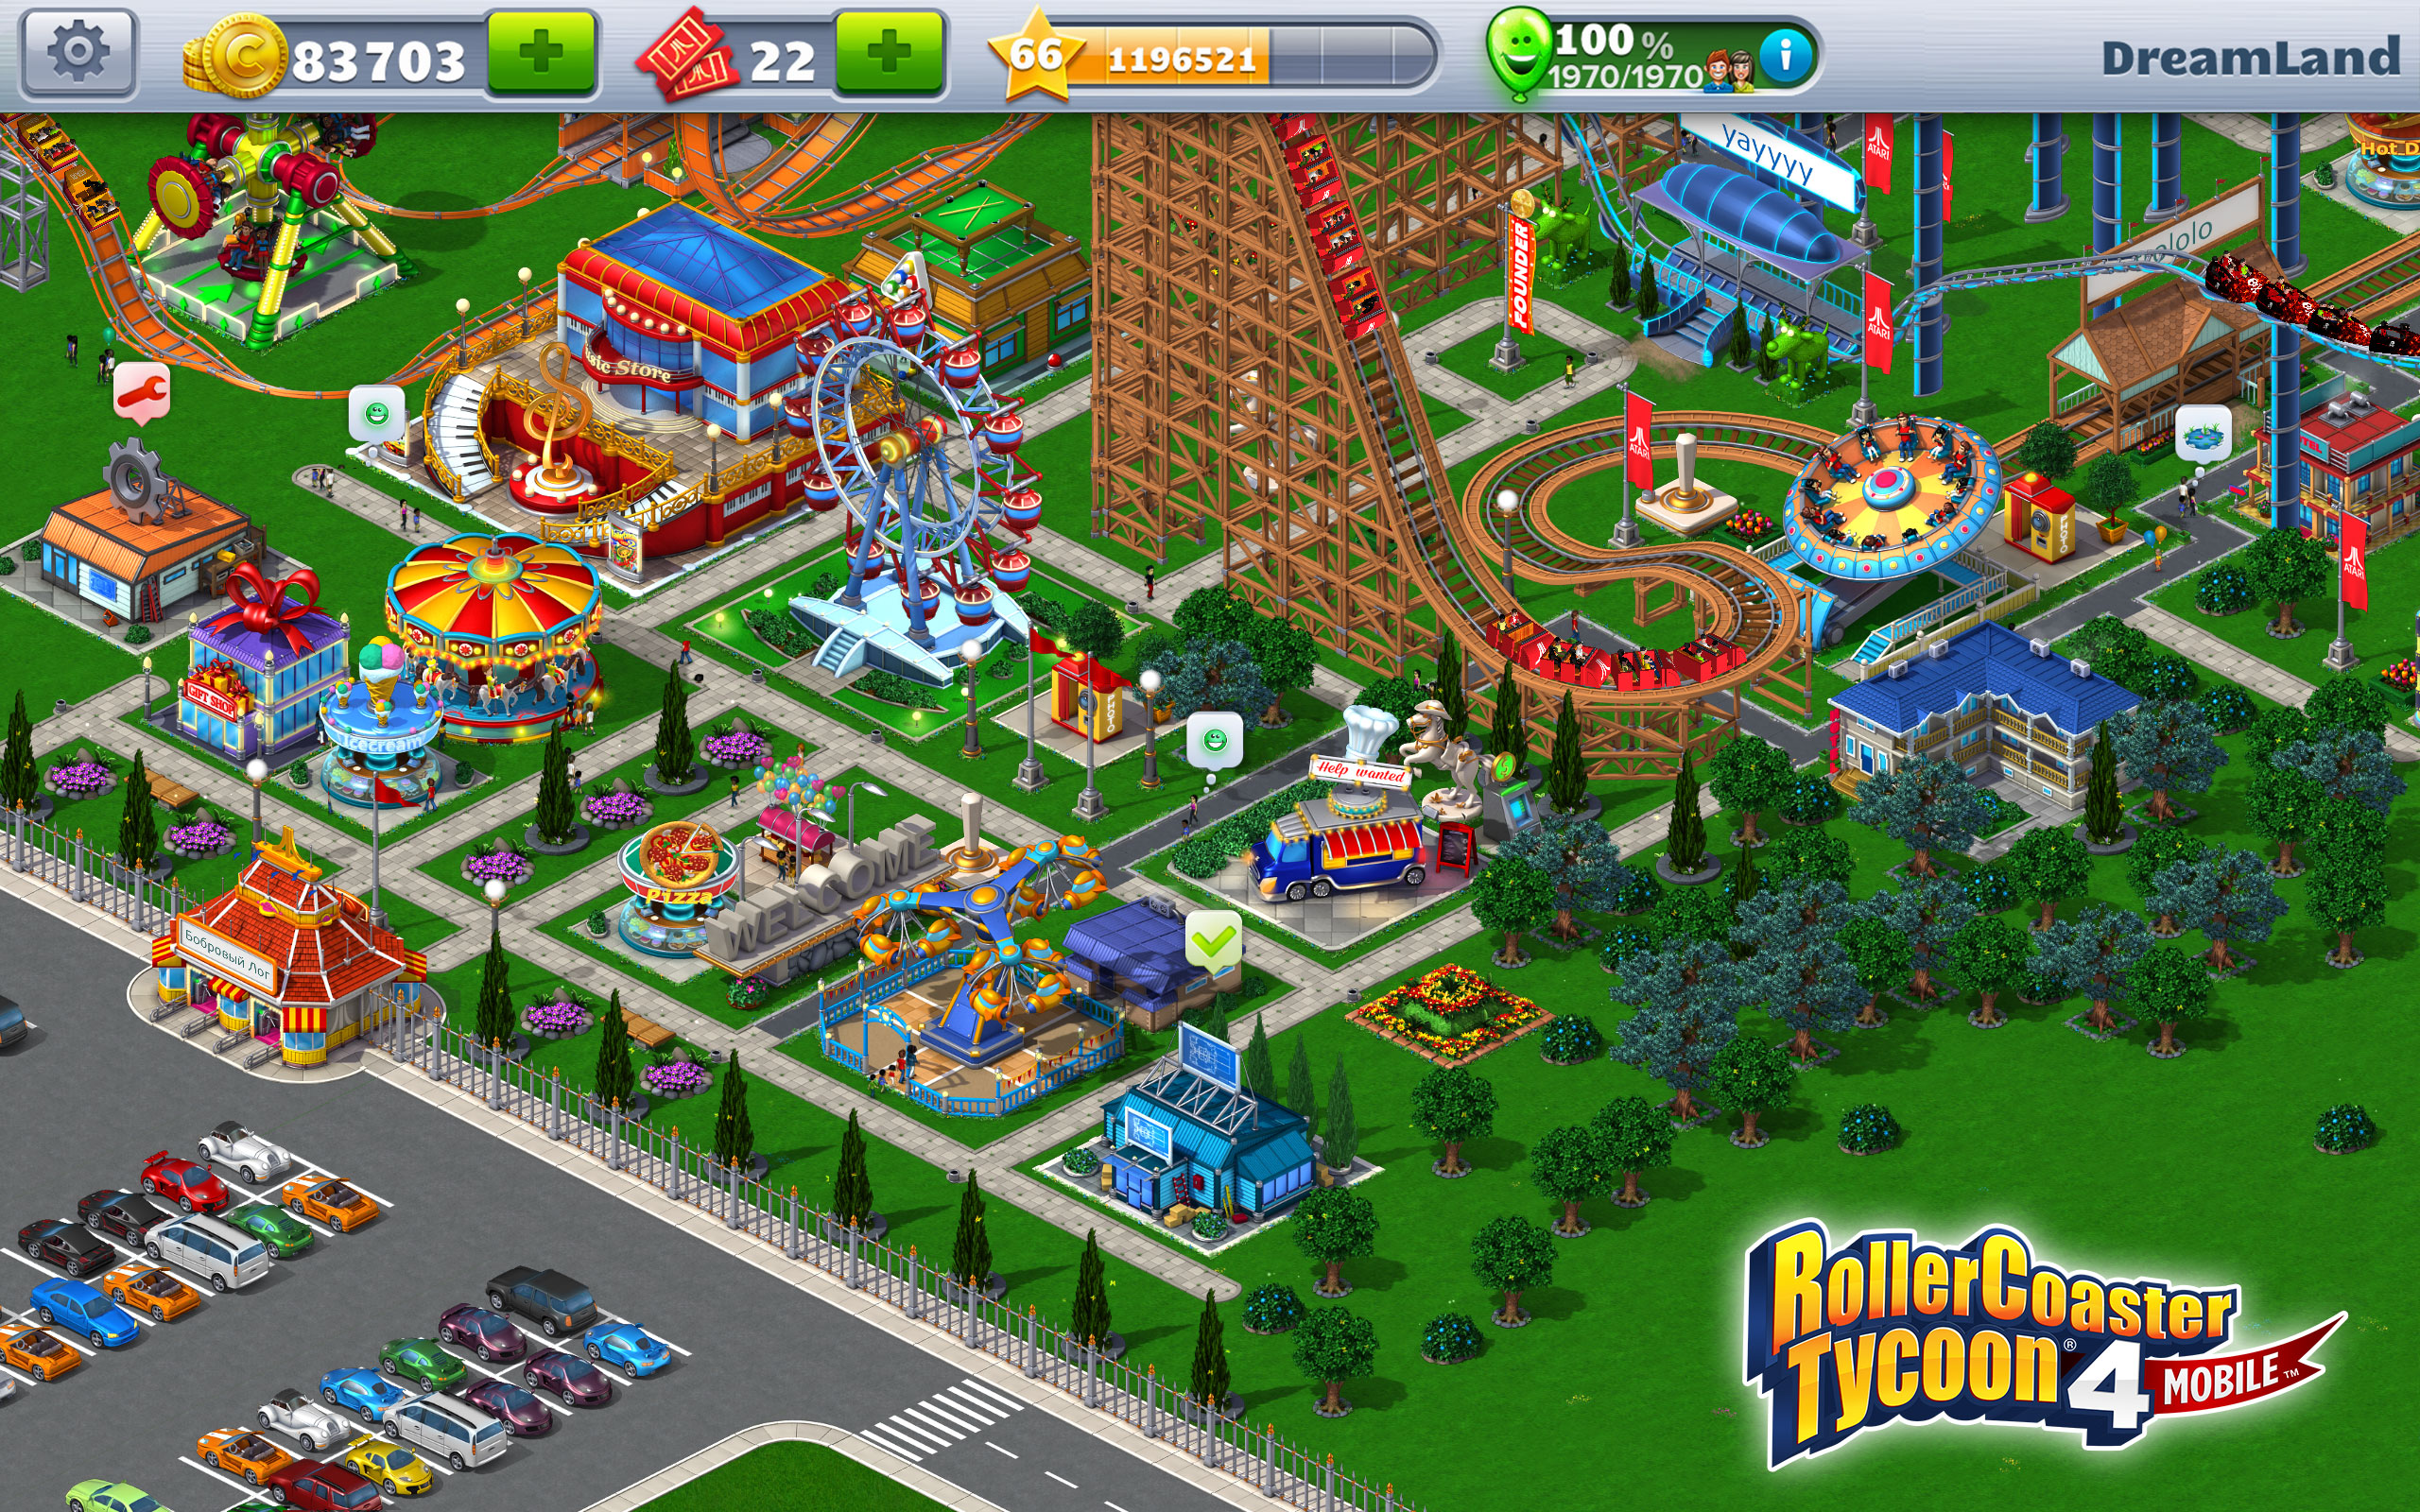 rollercoaster tycoon free download windows 10